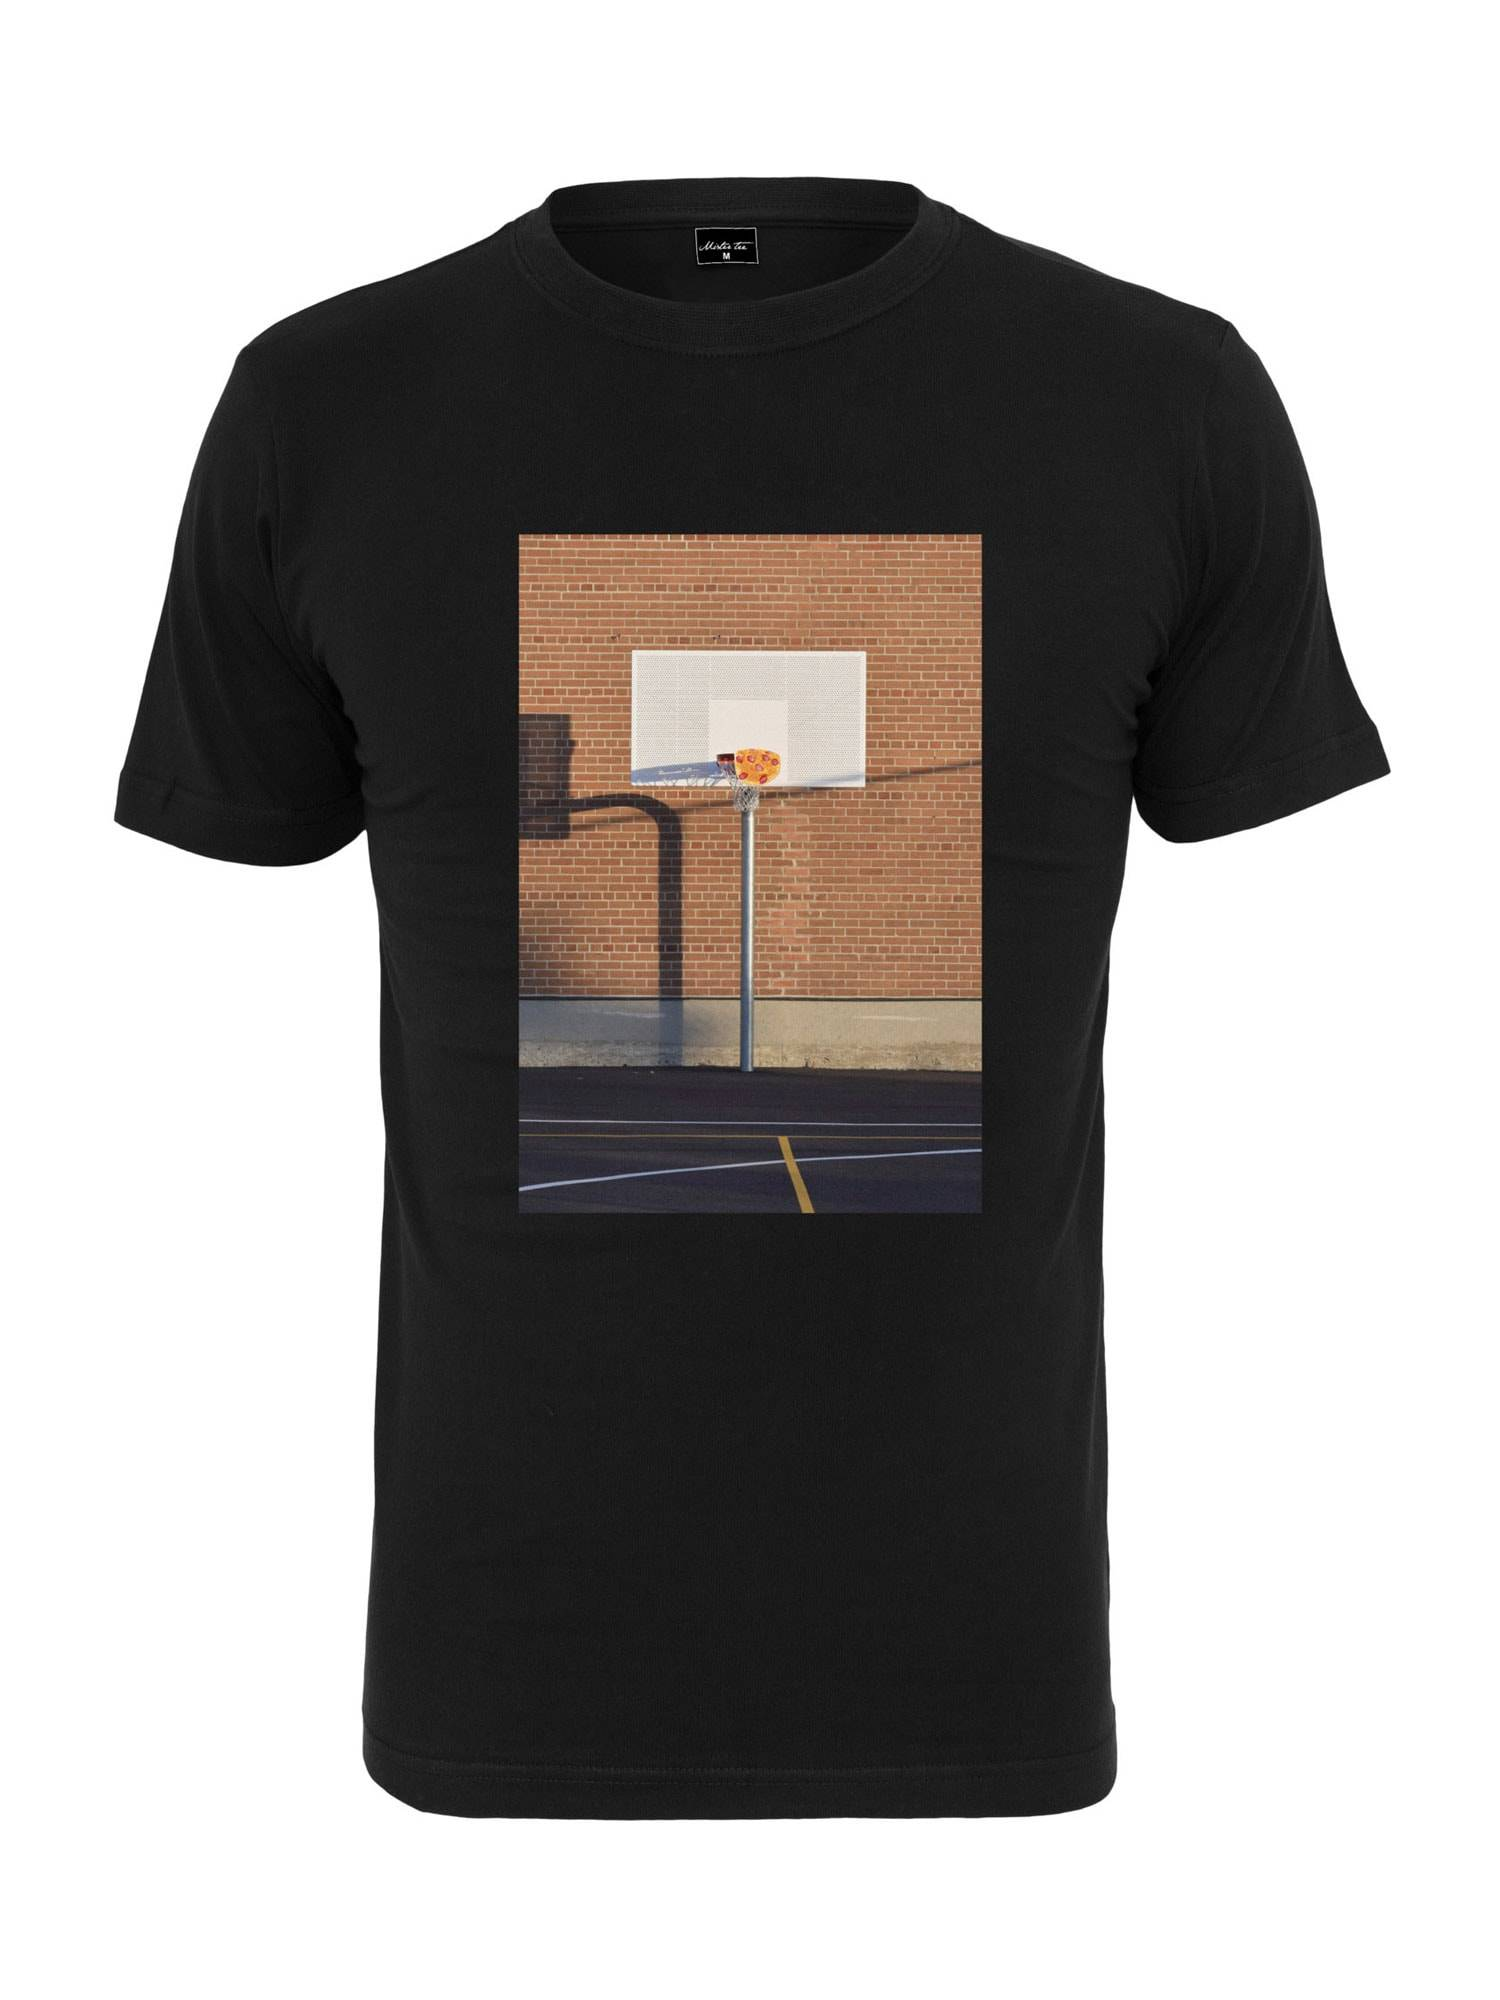 Tee T-Shirt 'Pizza Basketball Court'  - Noir - Taille: L - male